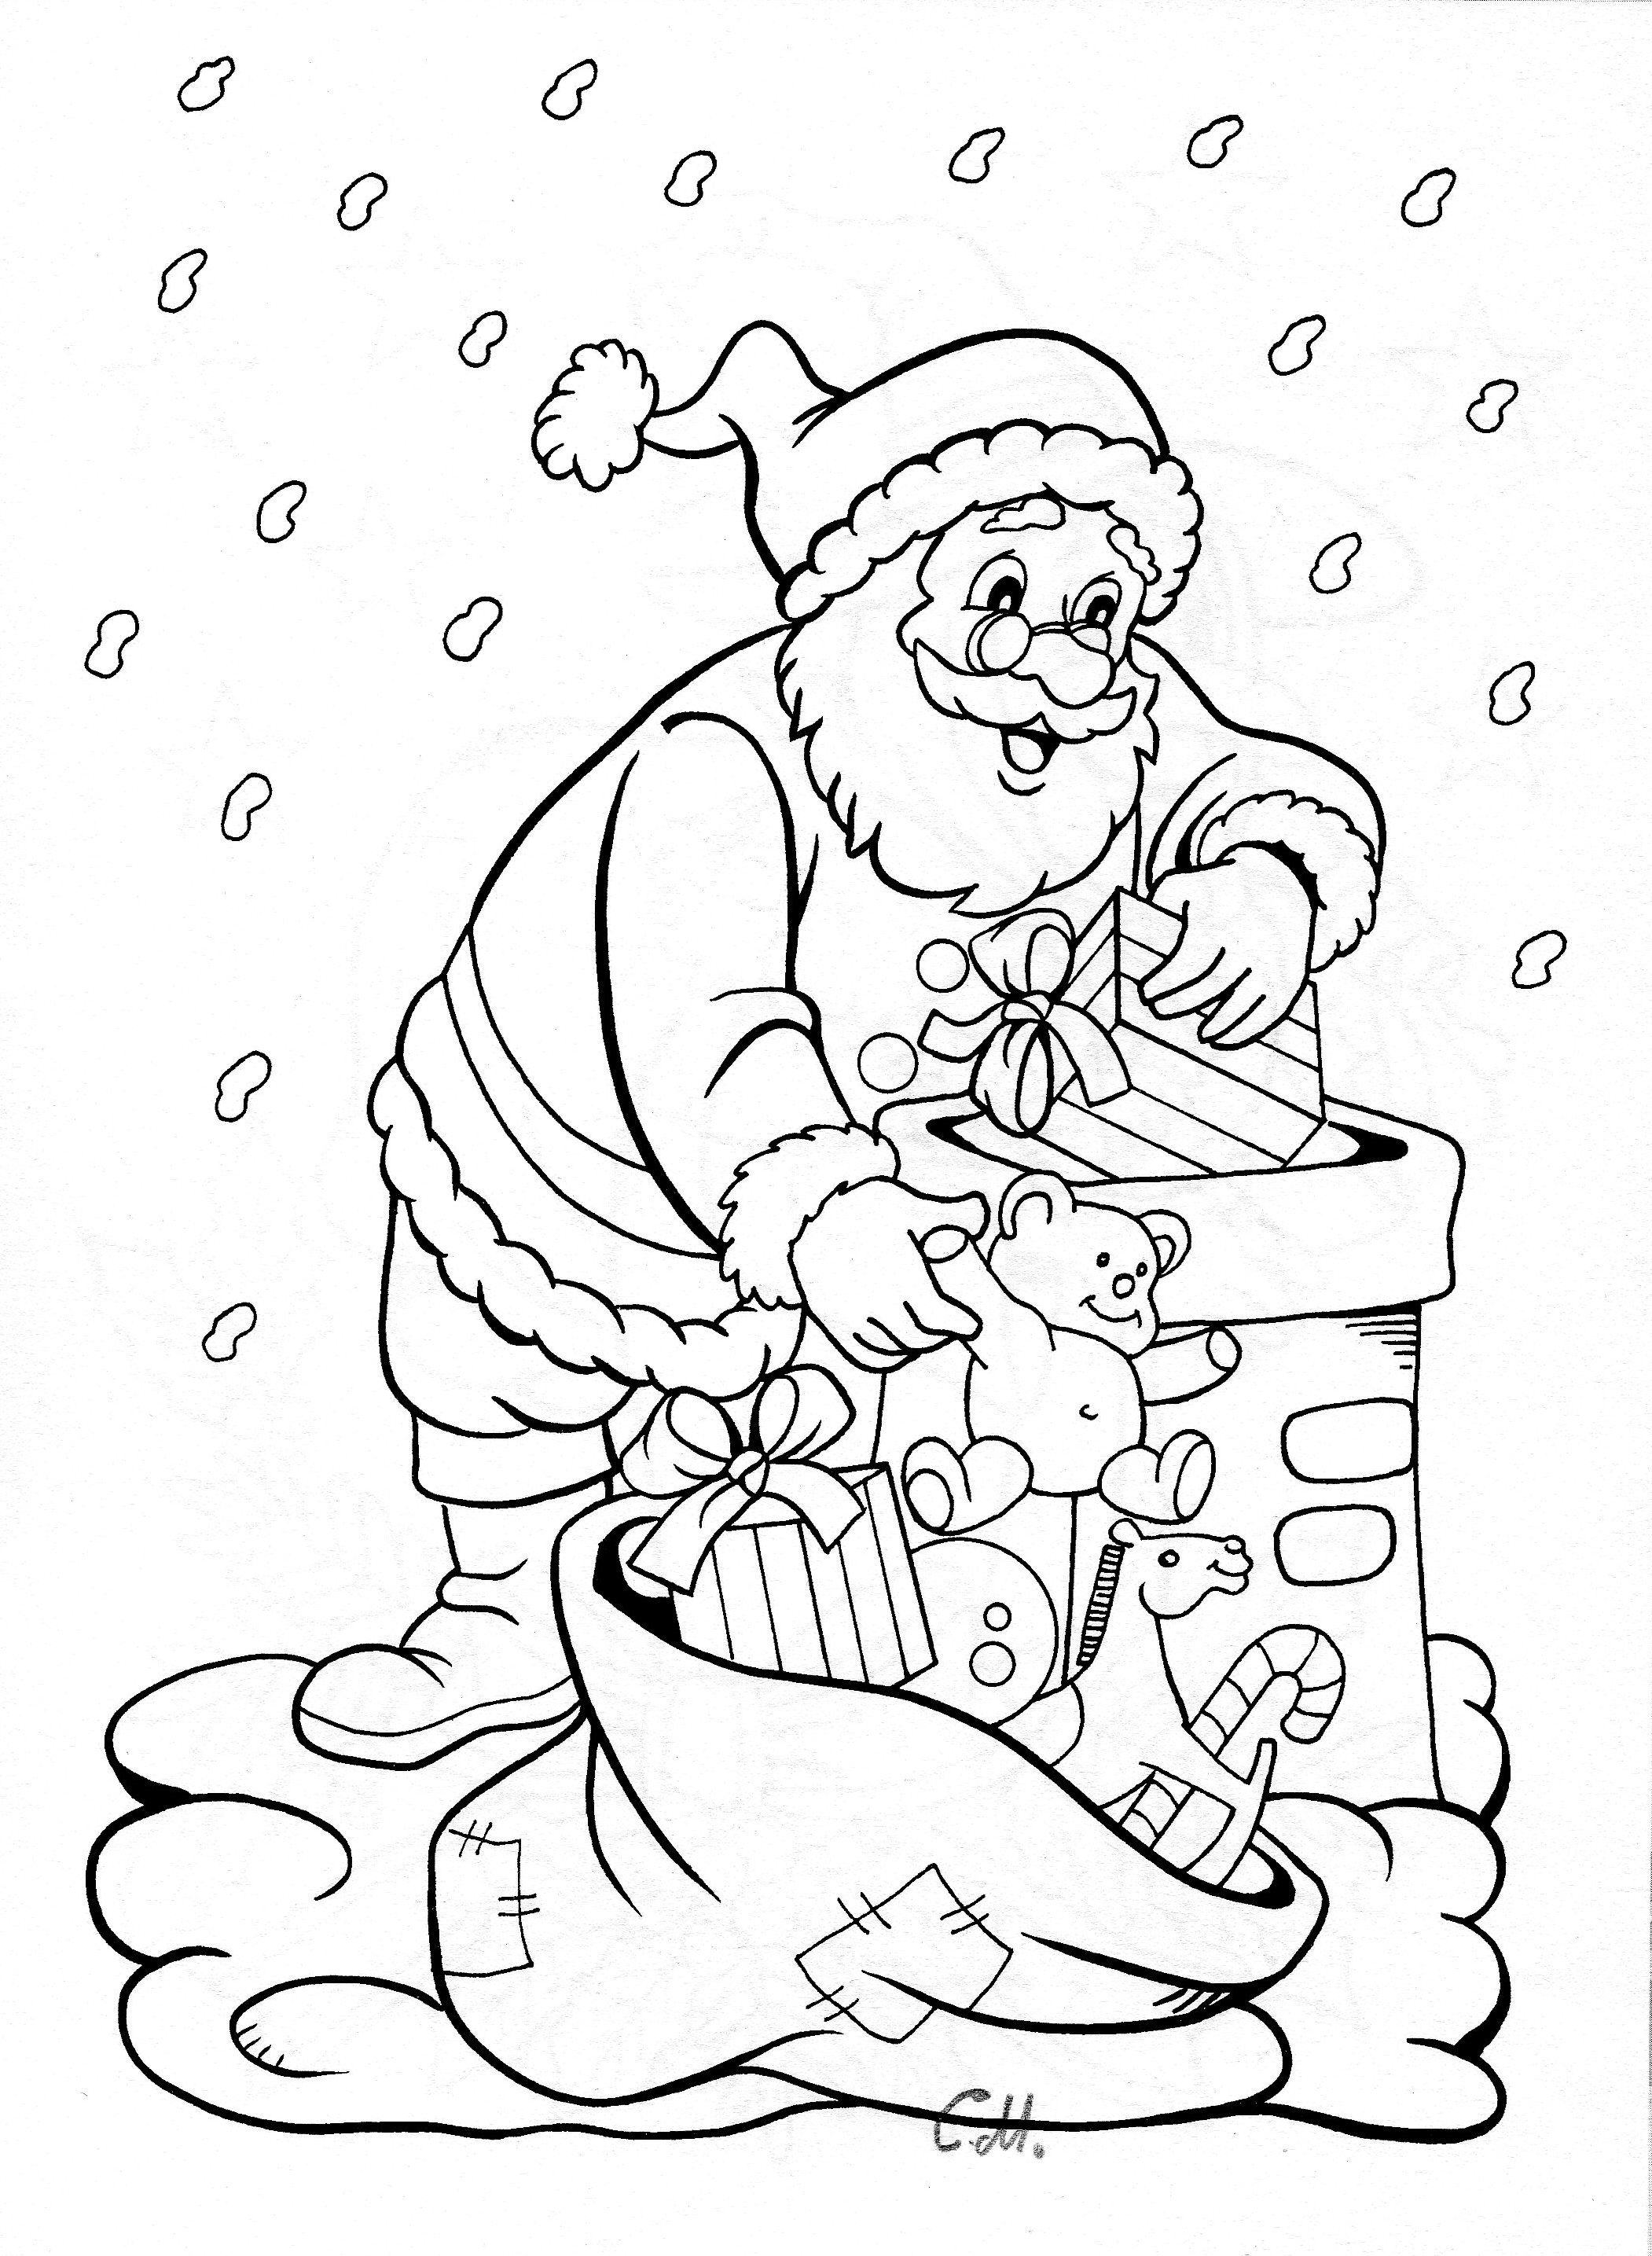 Pin by Sandra Early on Coloring Pages | Pinterest | Santa, Christmas ...